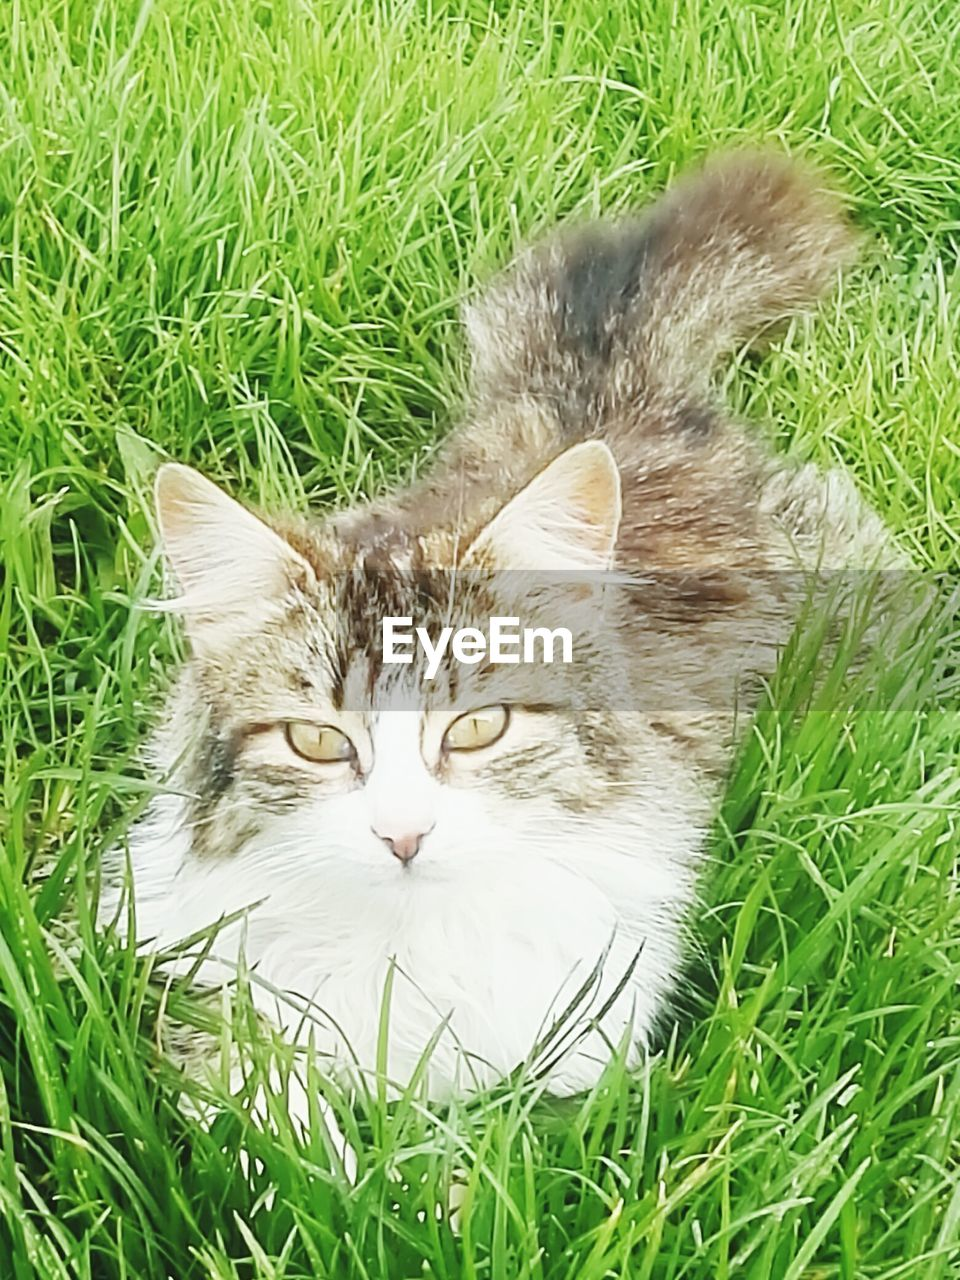 grass, cat, feline, domestic cat, pets, domestic, domestic animals, animal themes, mammal, animal, plant, vertebrate, green color, field, nature, one animal, land, no people, relaxation, portrait, whisker